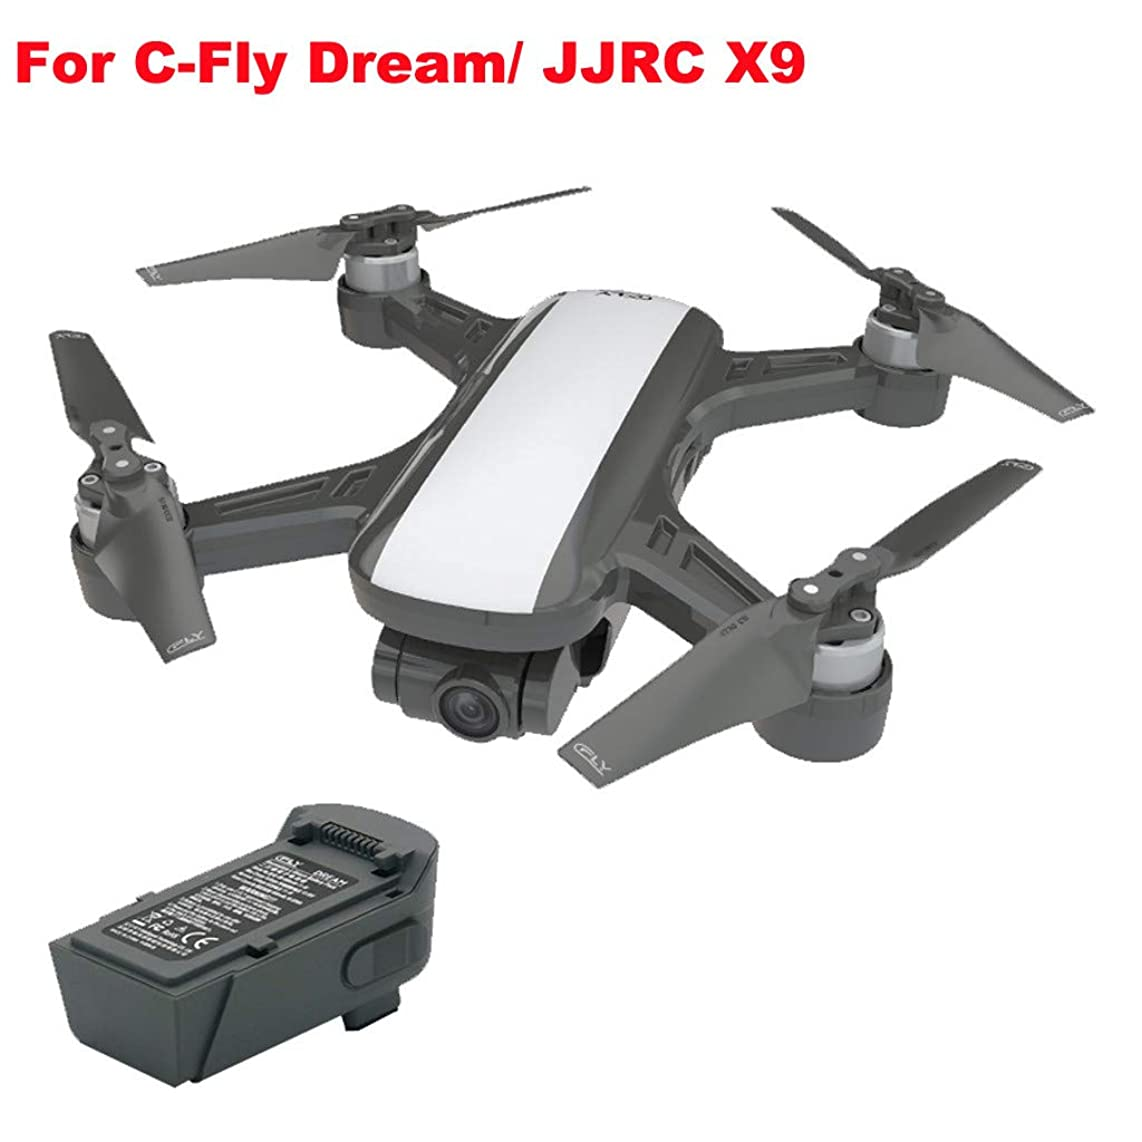 Ktyssp Battery for JJR/C X9/ C-Fly 11.4V 1000mAh Dream RC Quadcopter Drone Spare Parts